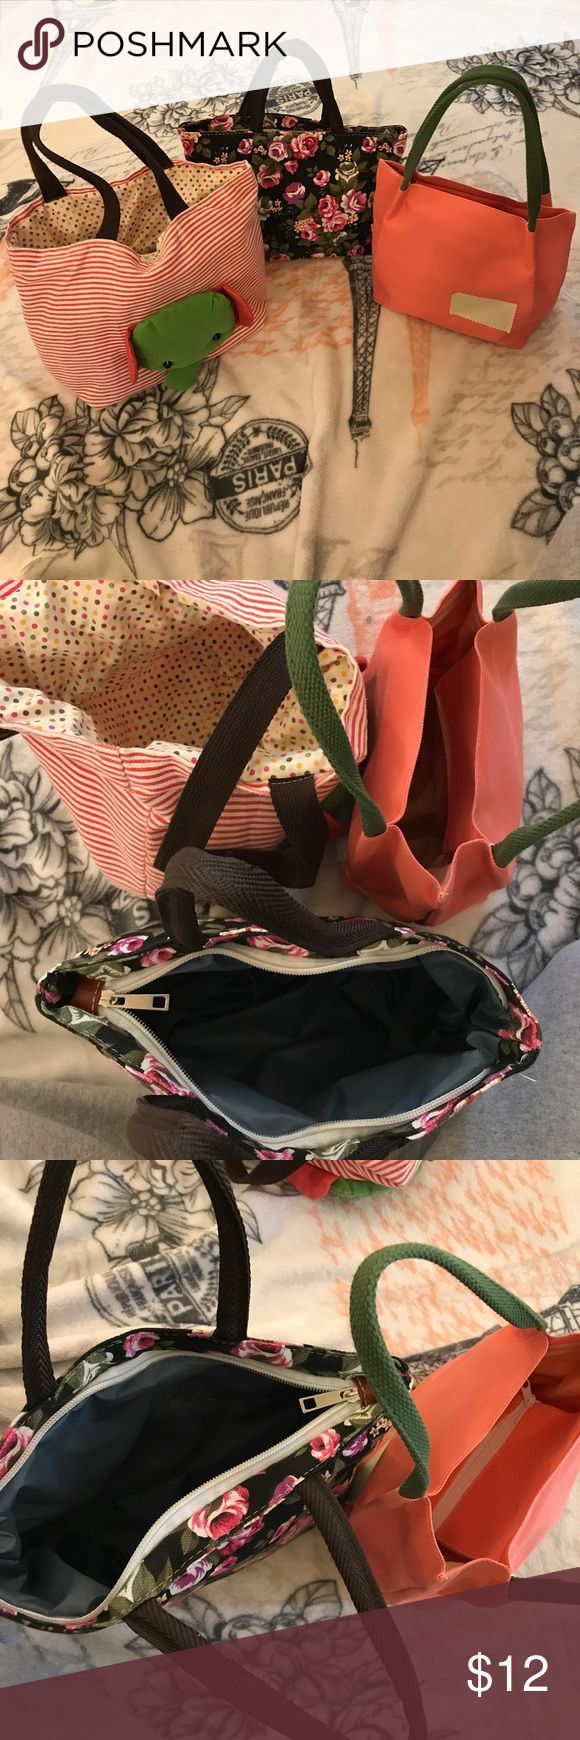 Set of 3 cute small lunch bags/small totes Super cute for holding small things such as lunches, shoes, etc  All in really good condition, none of them have been used more than twice!  SHIPS SAME DAY WITH FREE GIFTS! ☀️☀️☀️ Urban Outfitters Bags